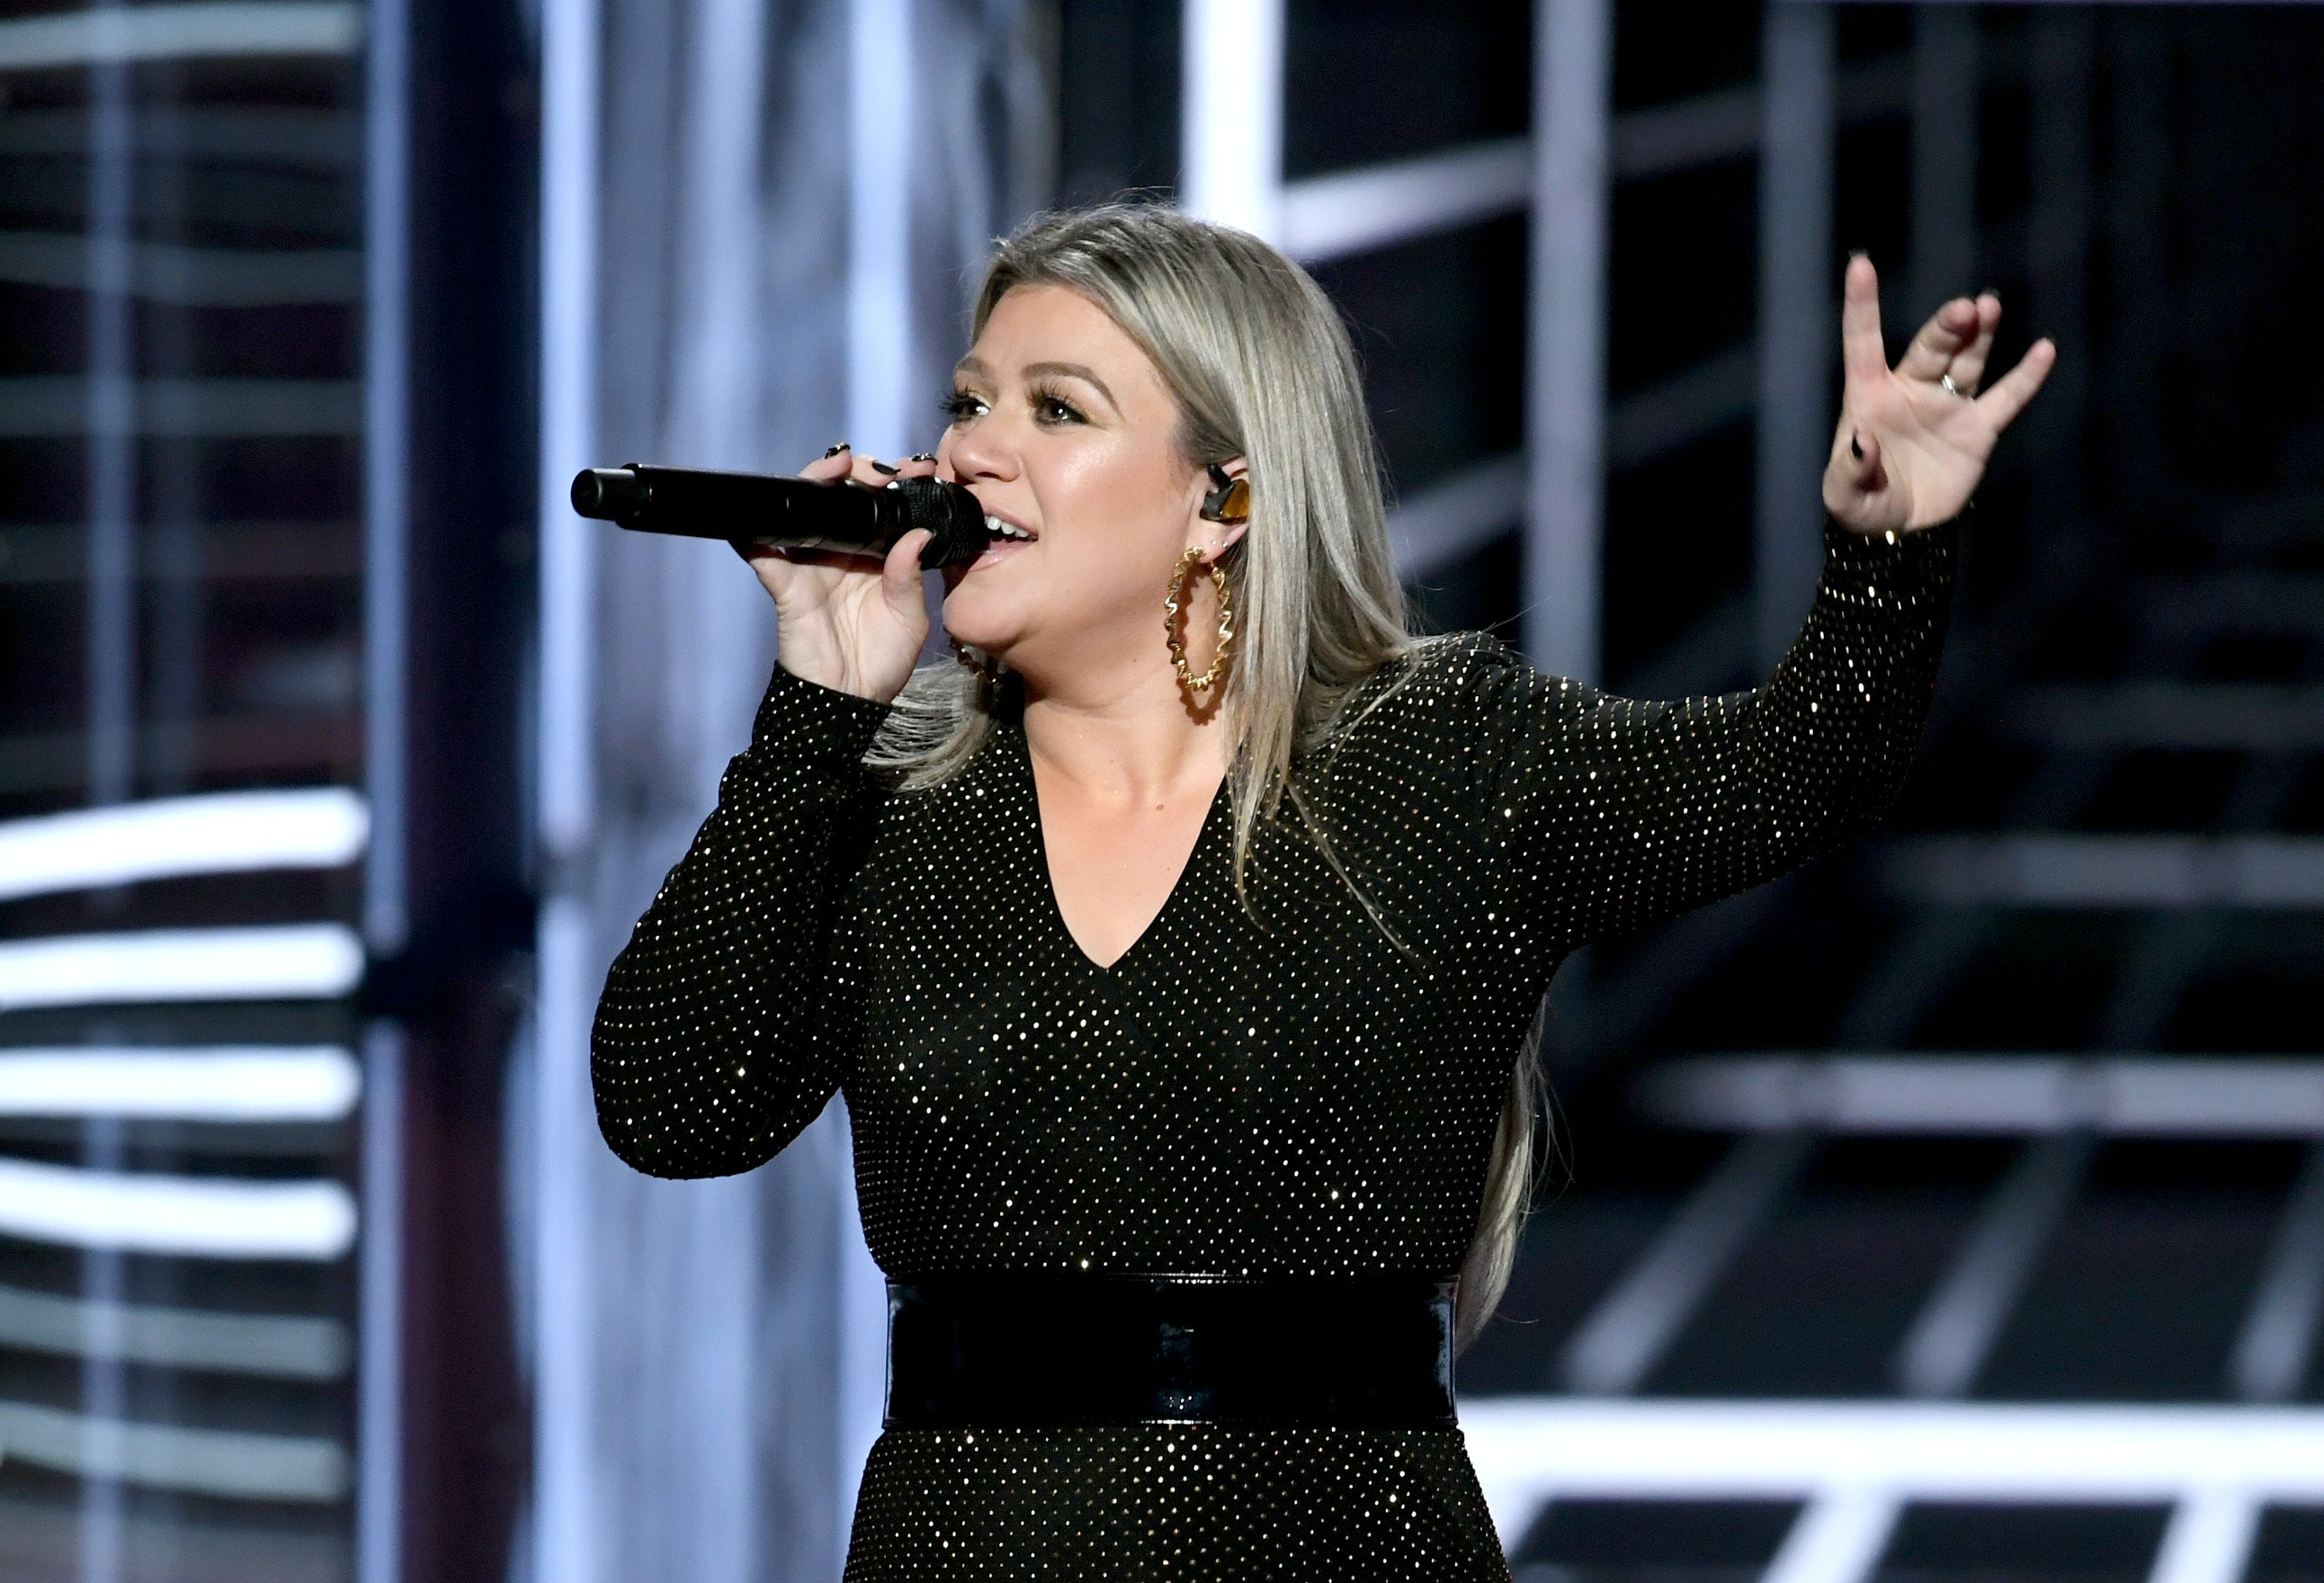 How To Stream The 2019 Billboard Music Awards So You Don't